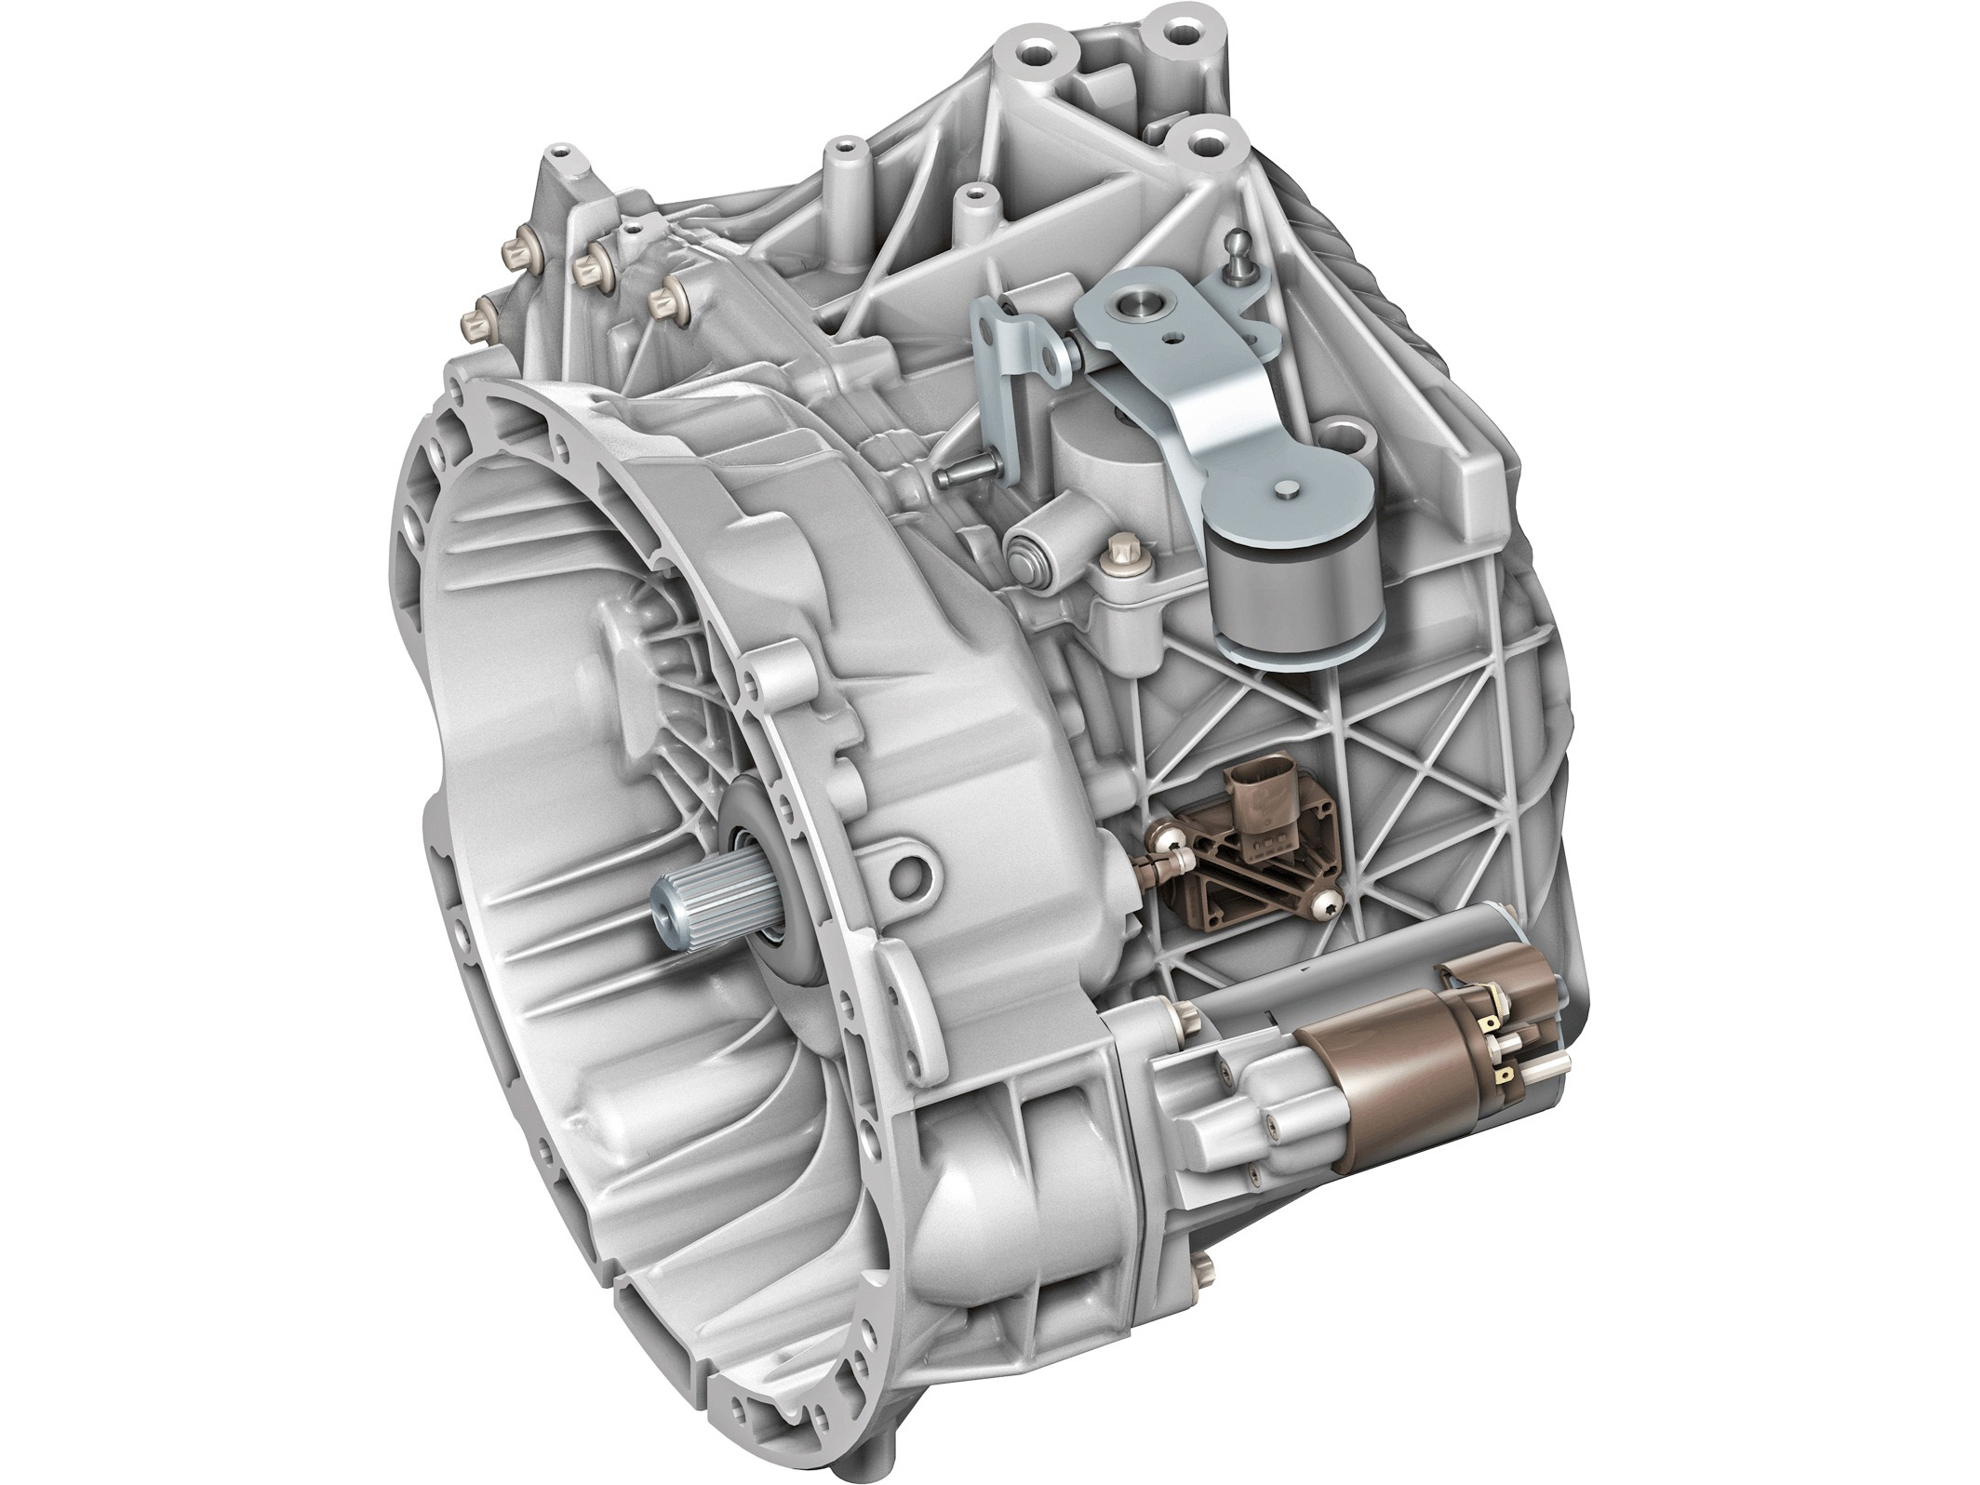 Mercedes Benz CLA Transmission